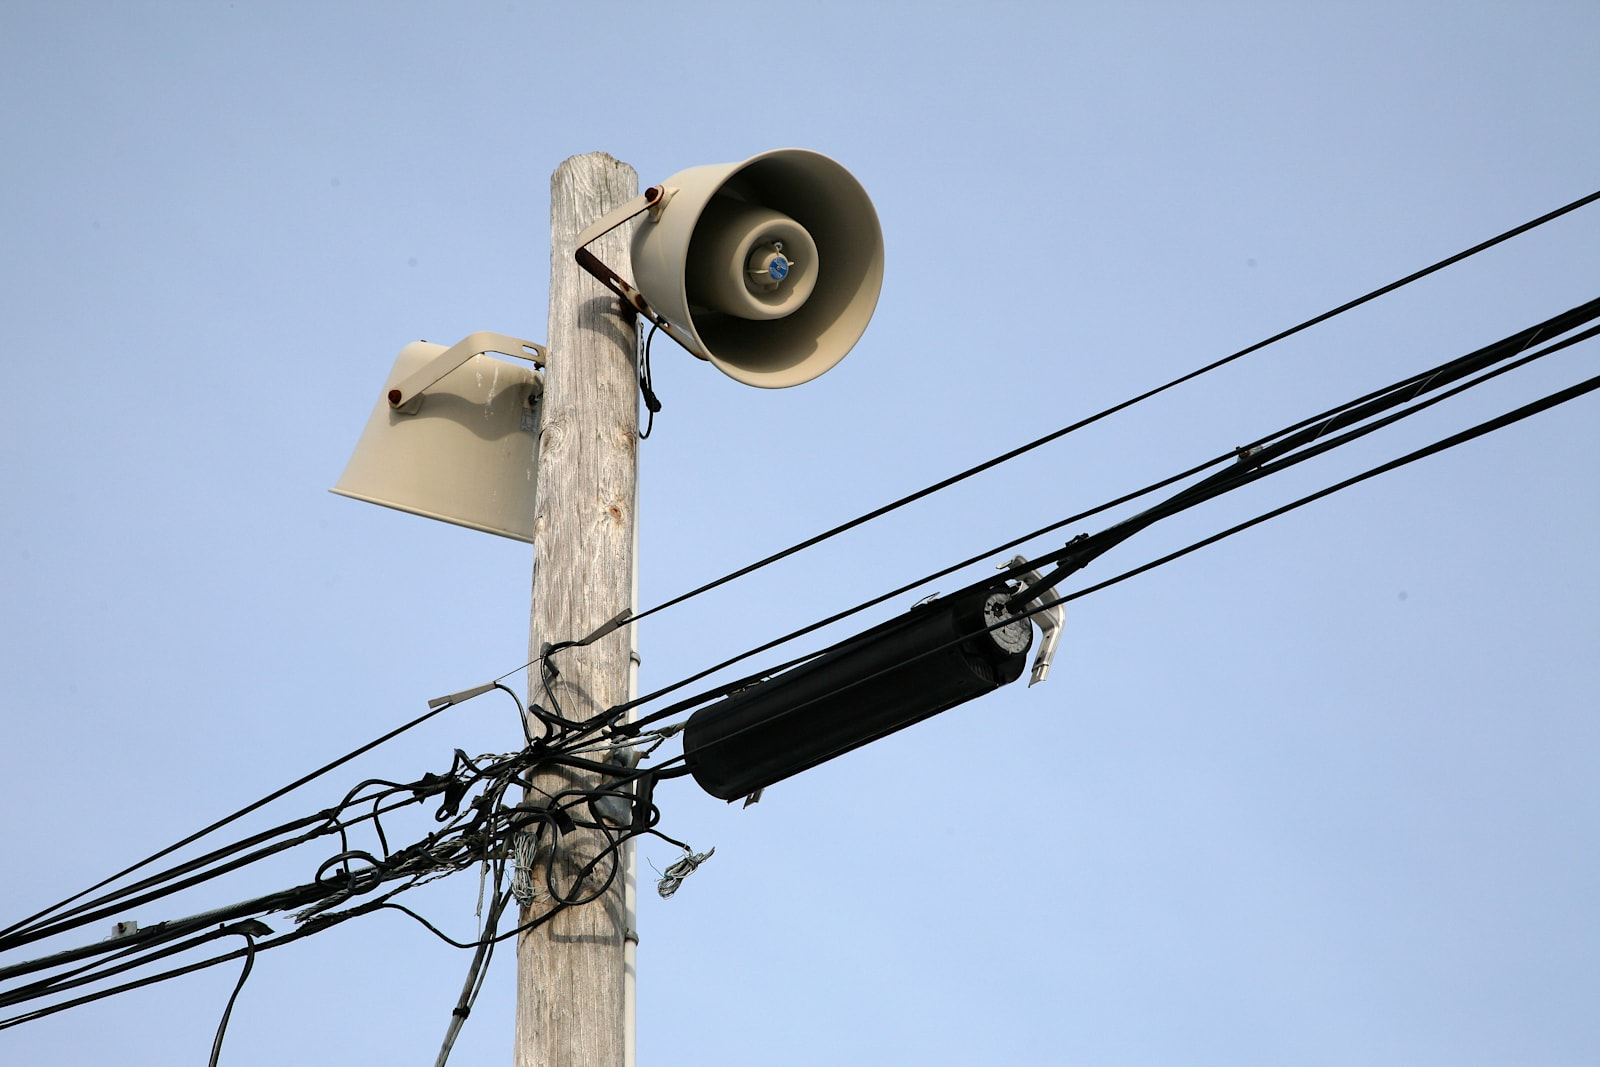 Warning sirens atop utility pole